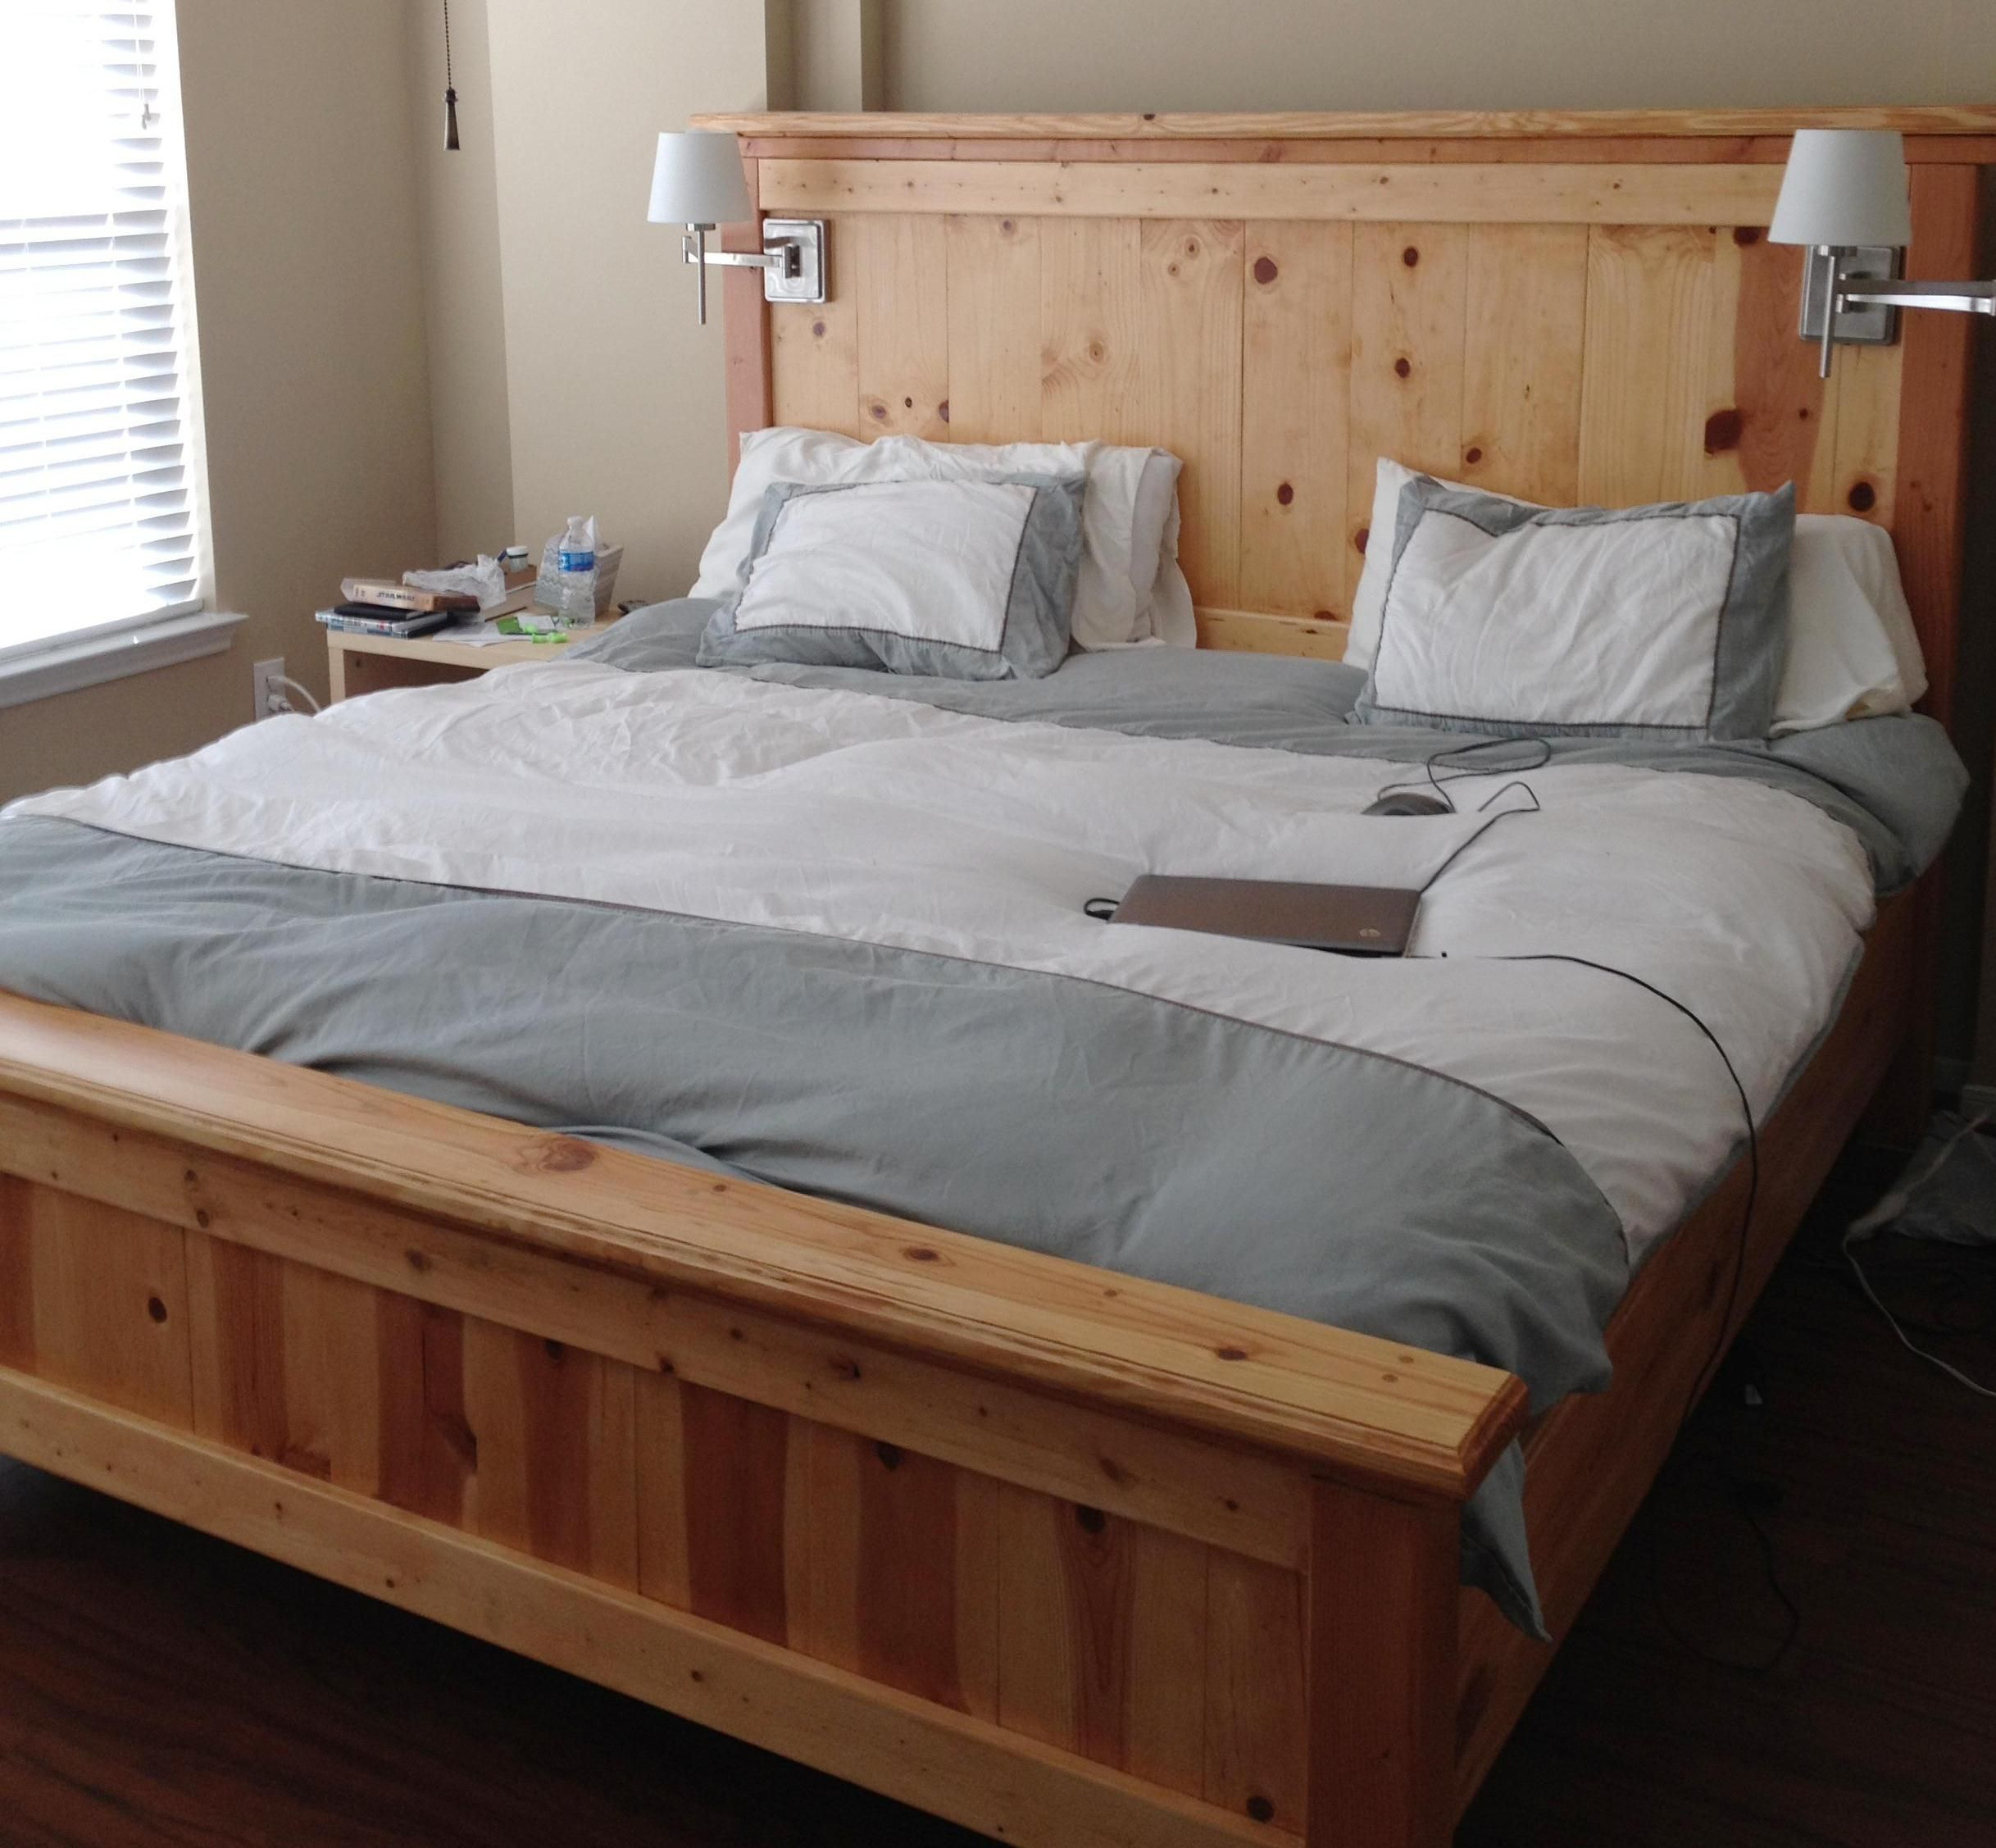 Bed Frame Blueprints Free Farmhouse Bed King Do It